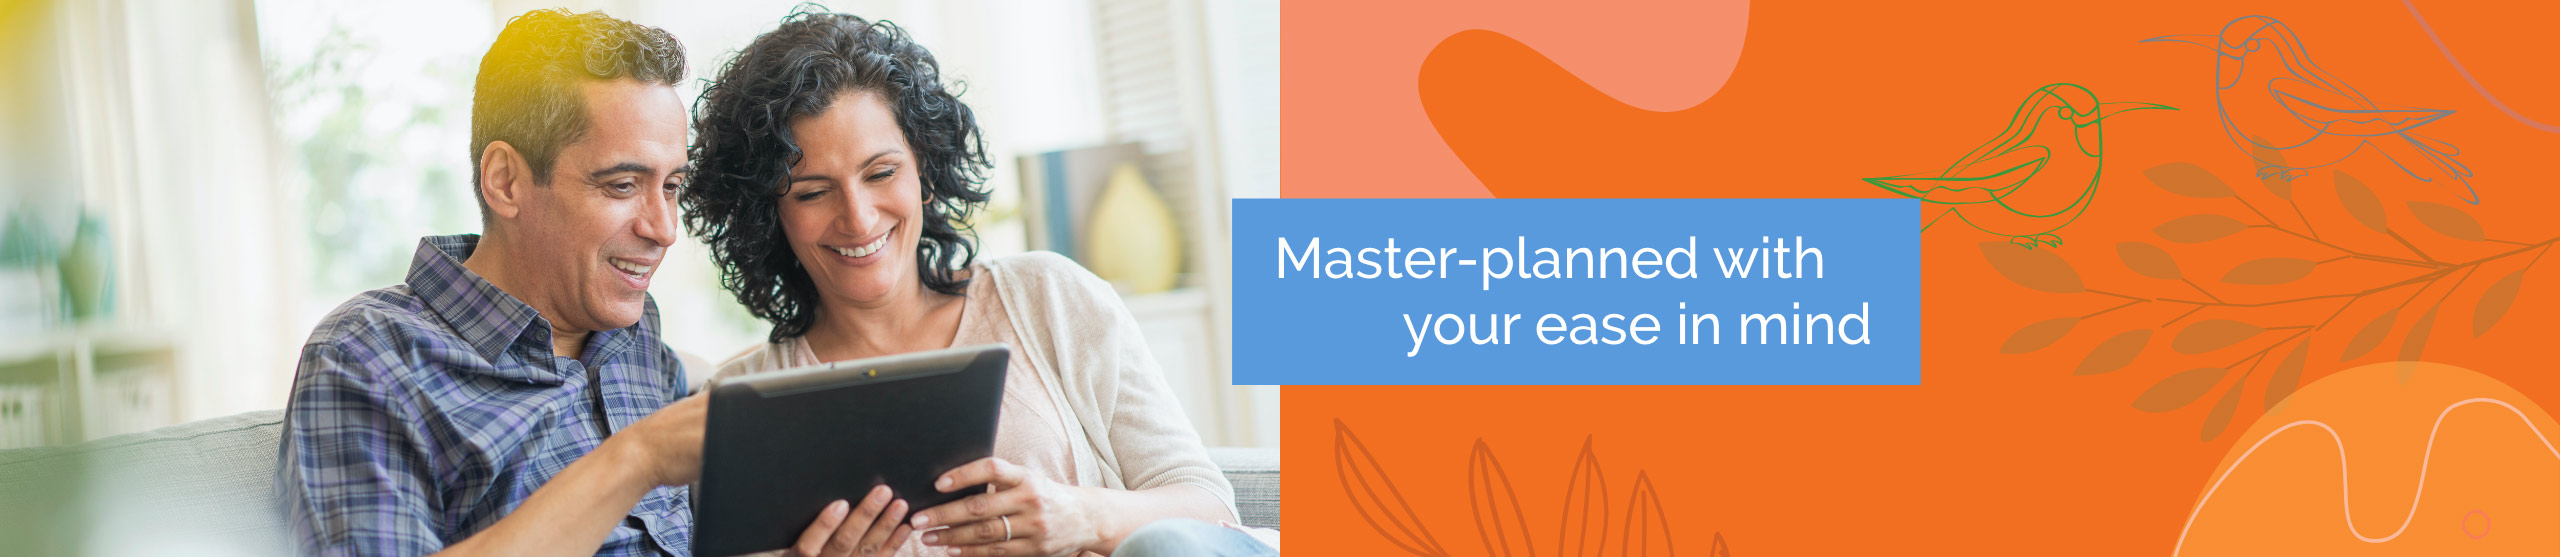 Master-planned with your ease in mind